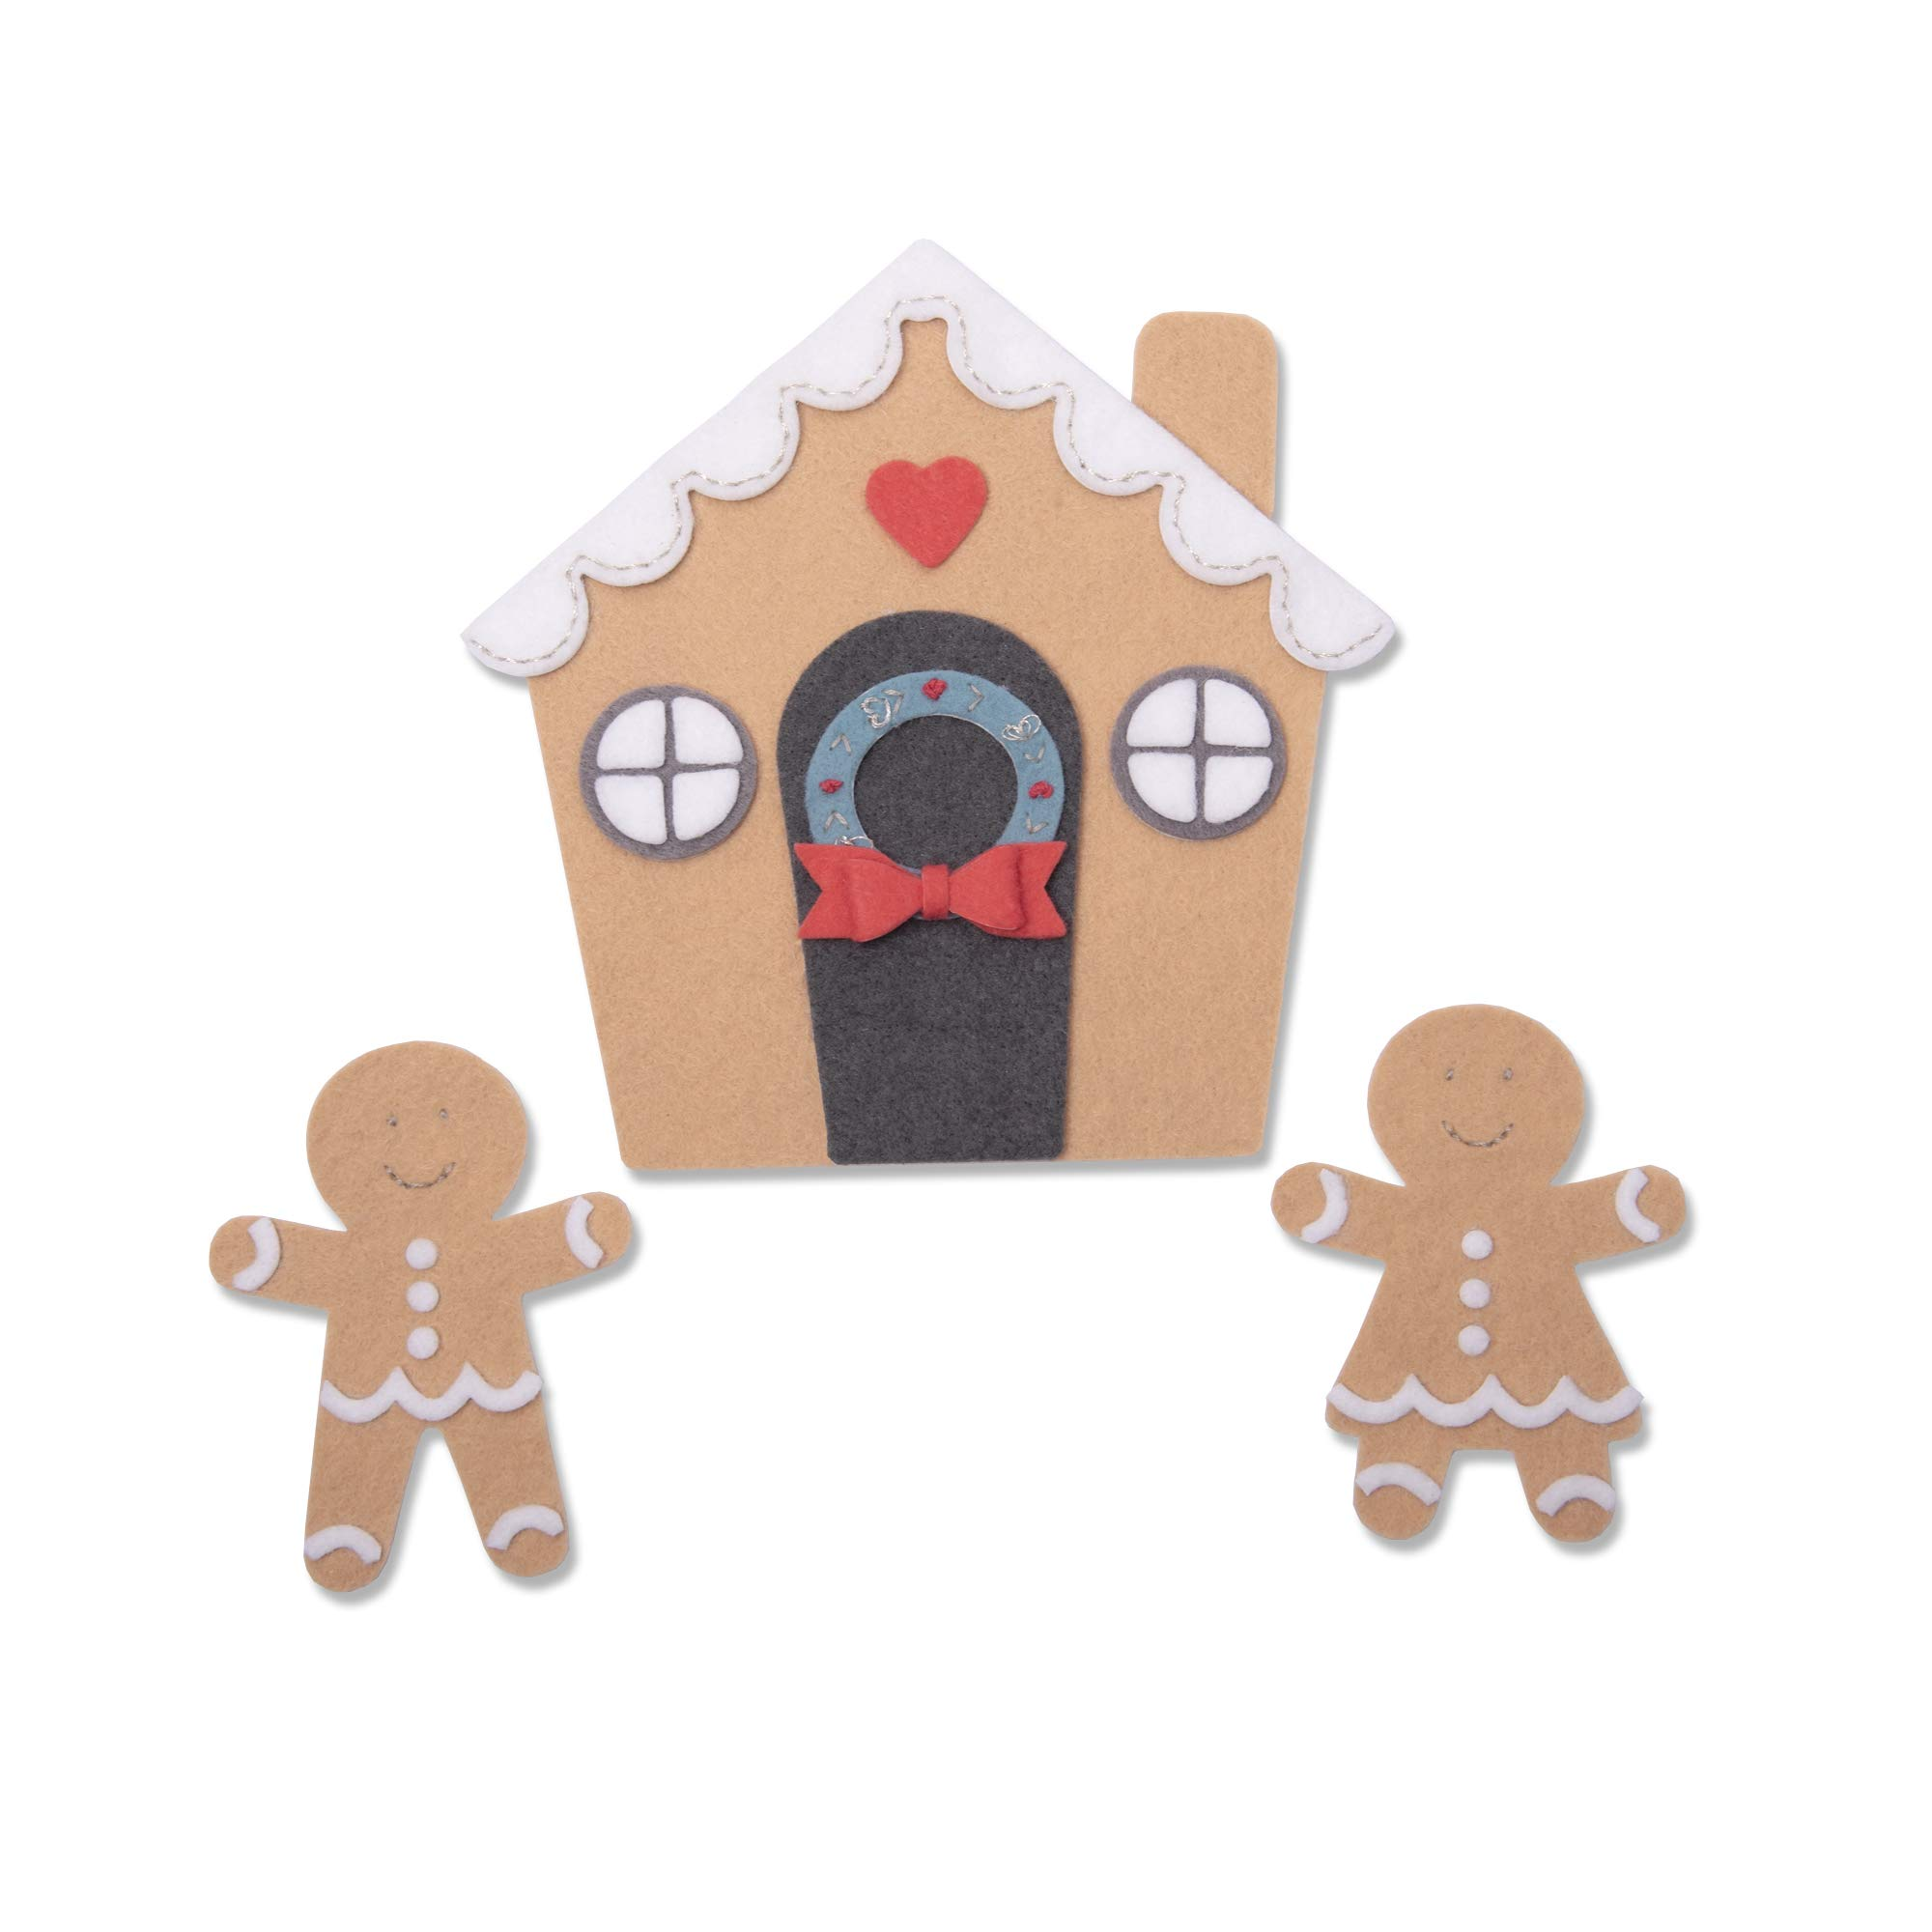 Sizzix 663325 Gingerbread House by Jennifer Ogborn Dies, us:one Size, Multicolor